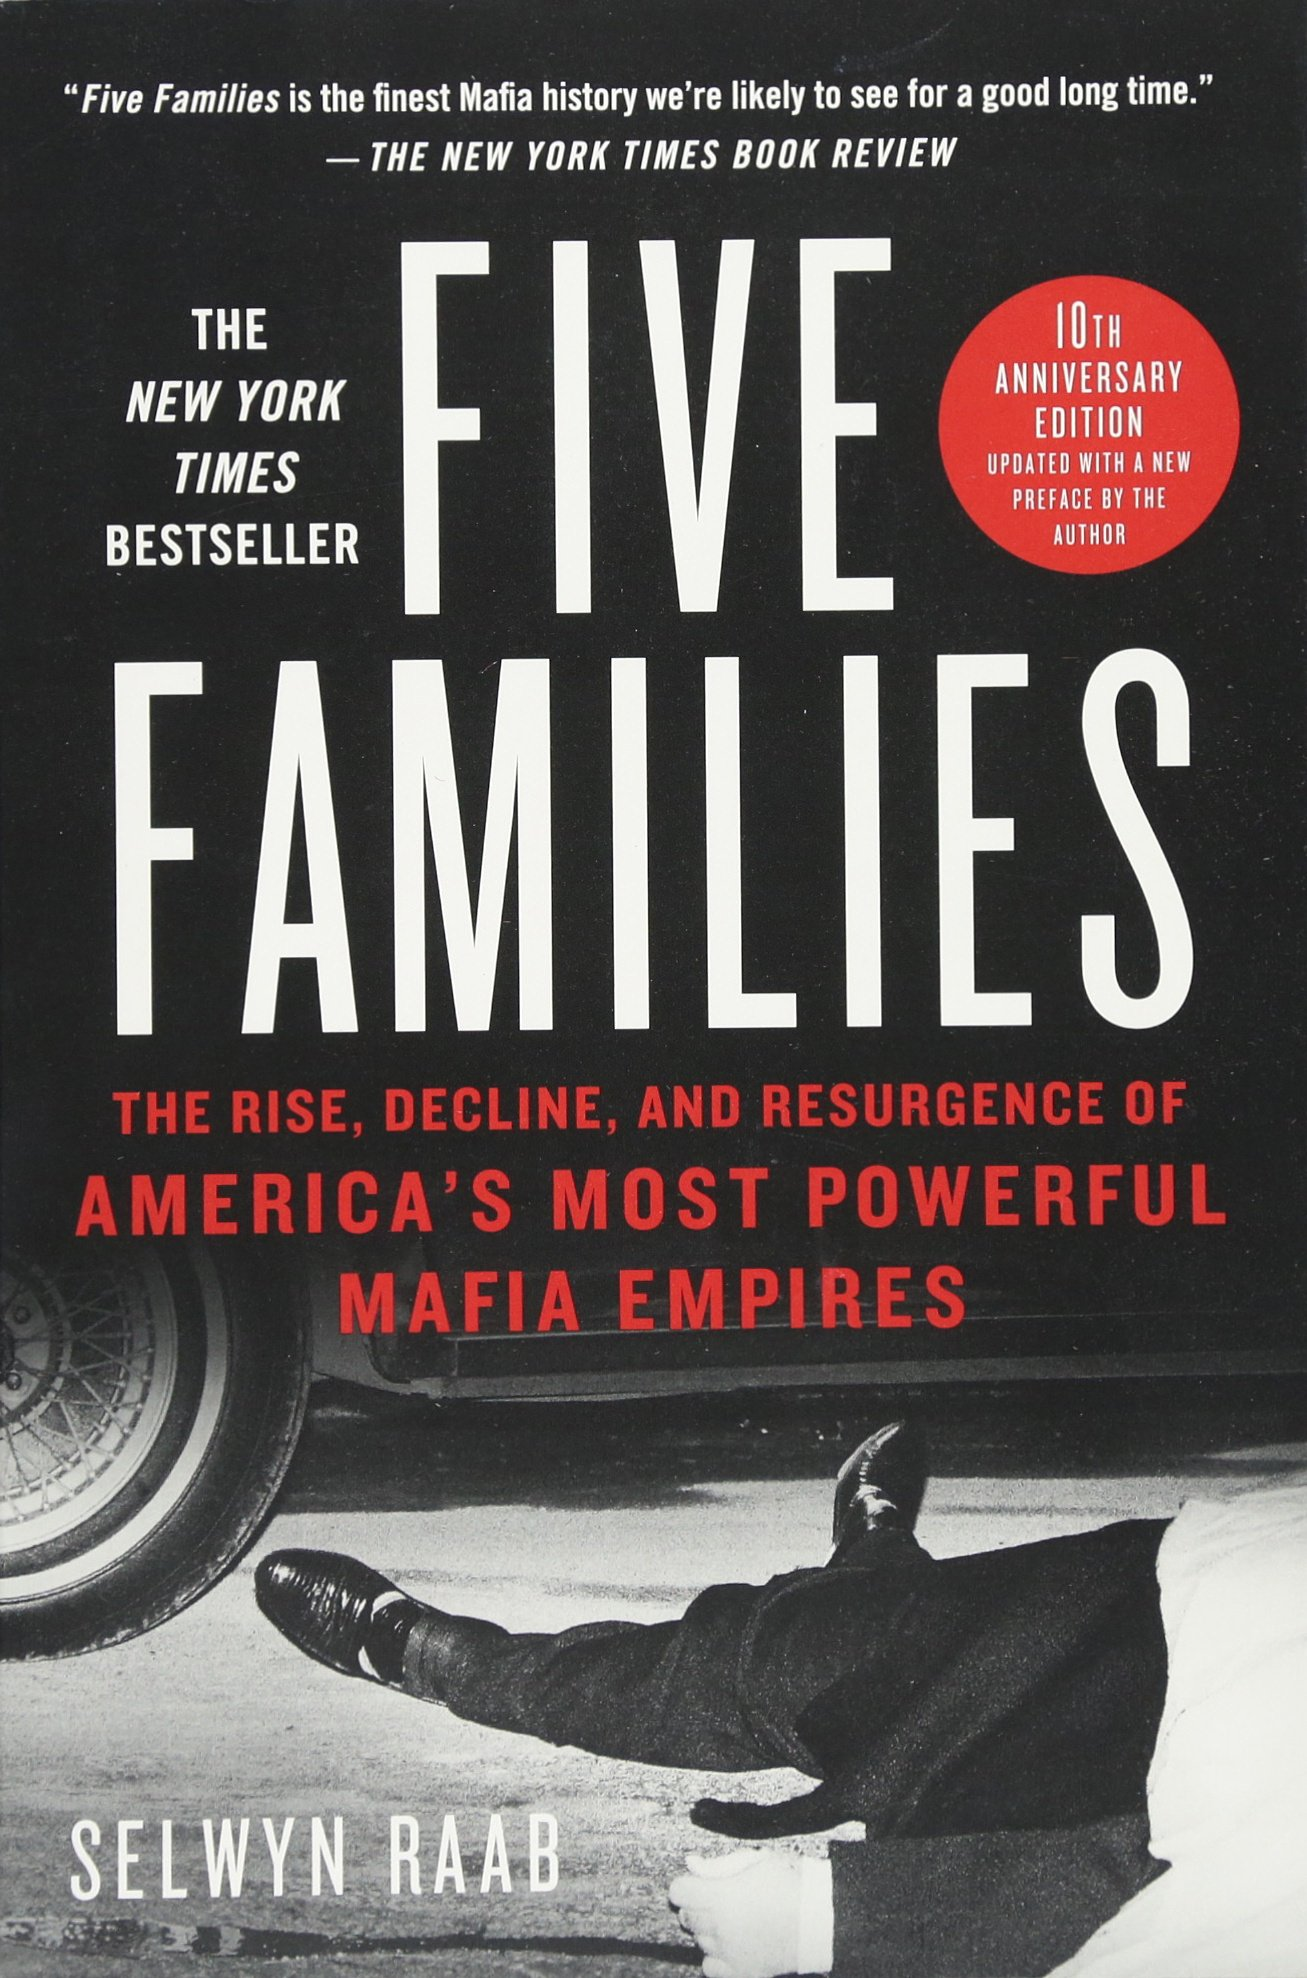 Five Families: The Rise, Decline, and Resurgence of America's Most Powerful Mafia Empires Paperback – October 4, 2016 Selwyn Raab 1250101700 Organized Crime TRUE CRIME / Organized Crime